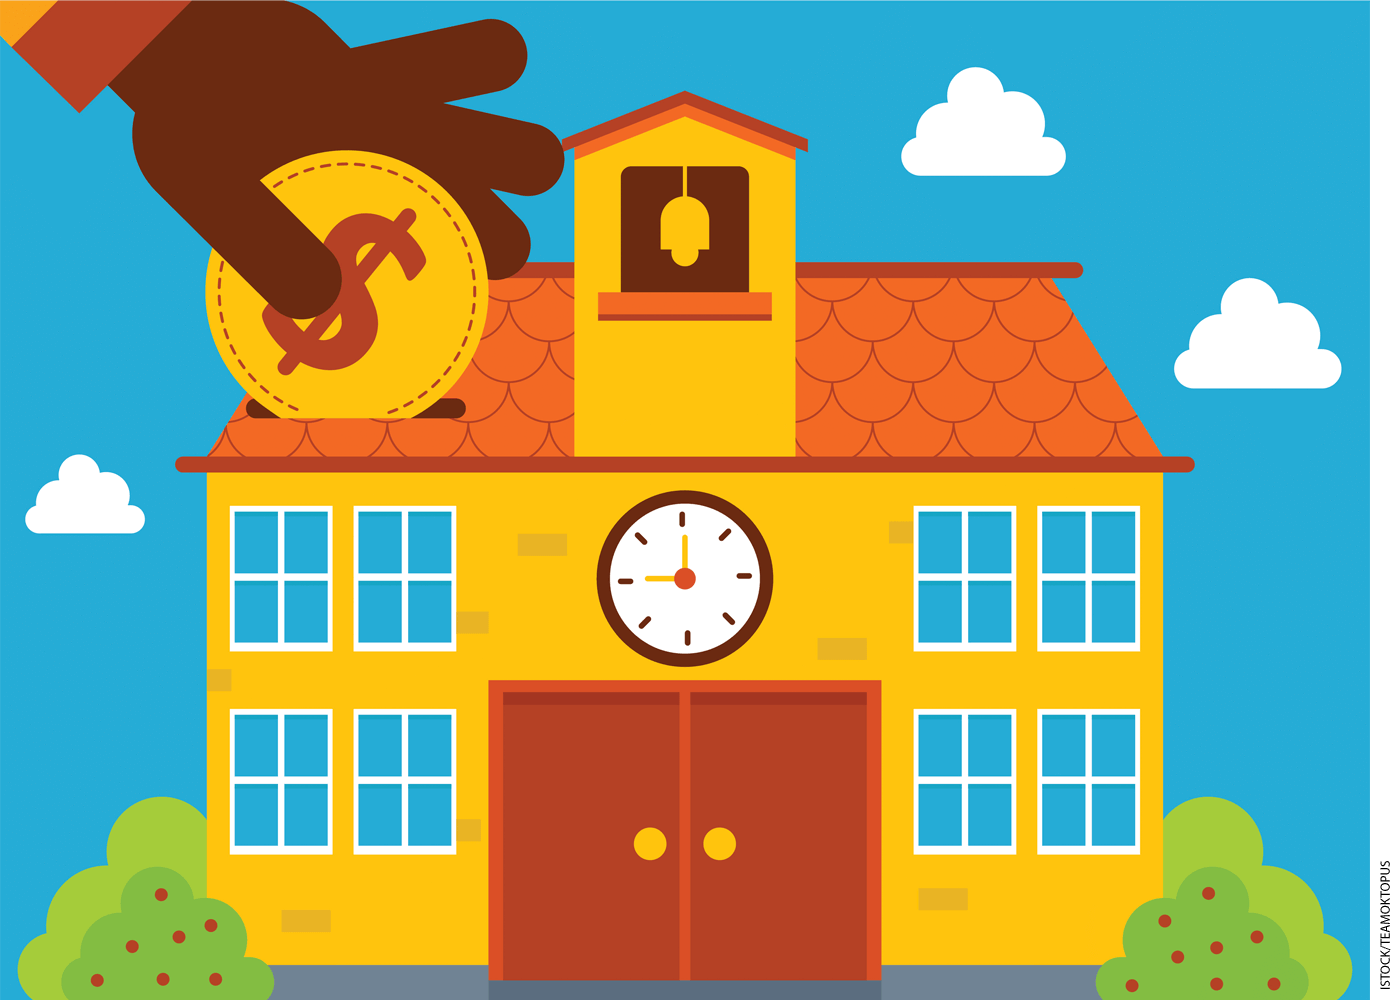 Illustration of a hand dropping a coin into a school